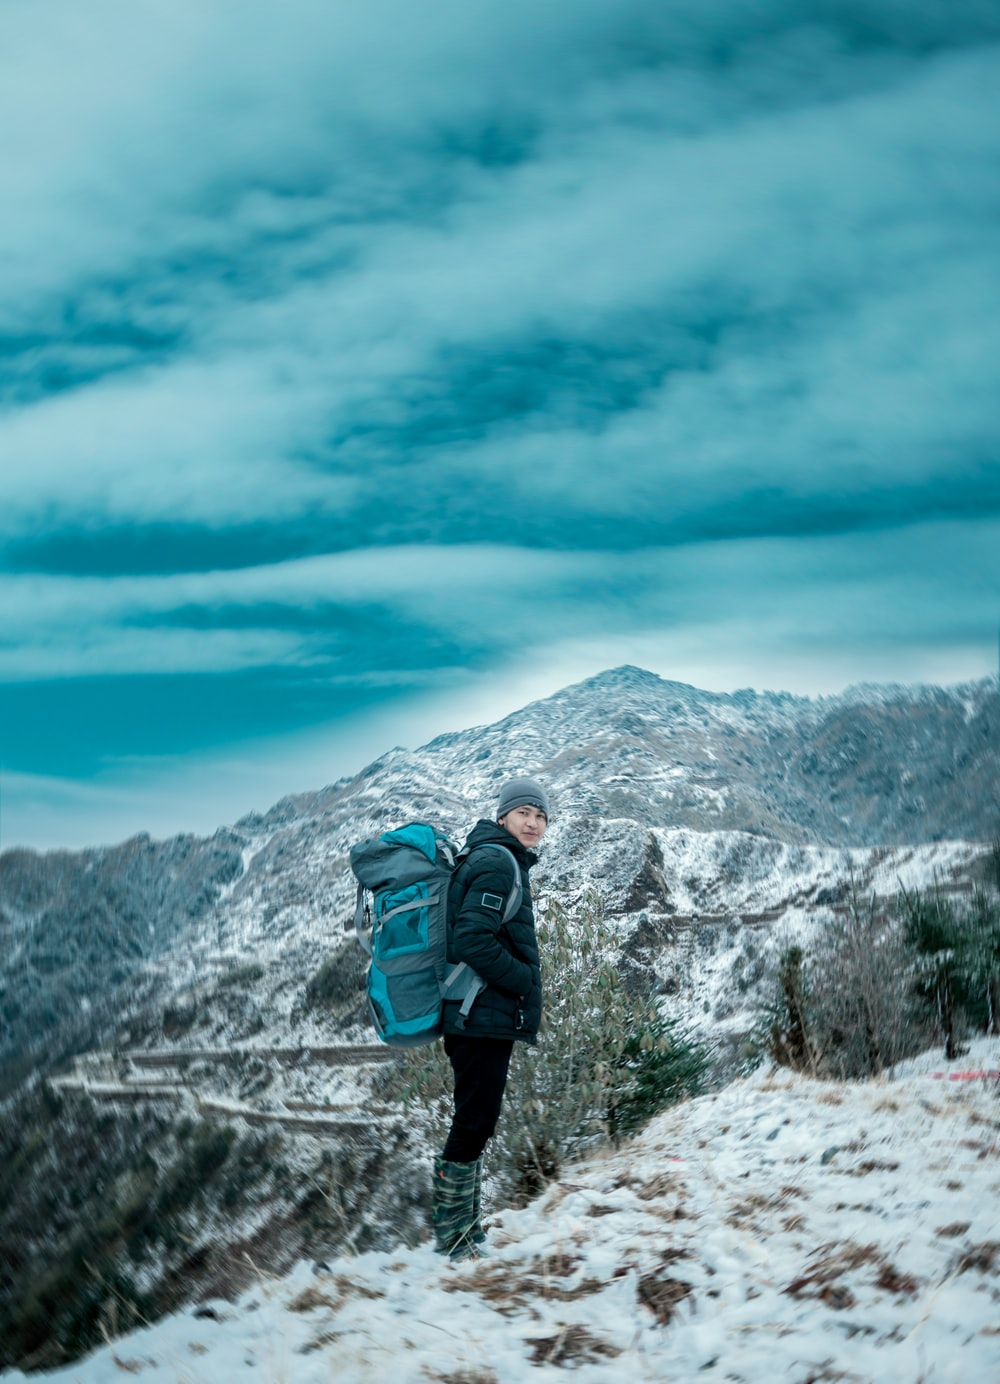 man in black jacket and blue backpack standing on snow covered ground during daytime